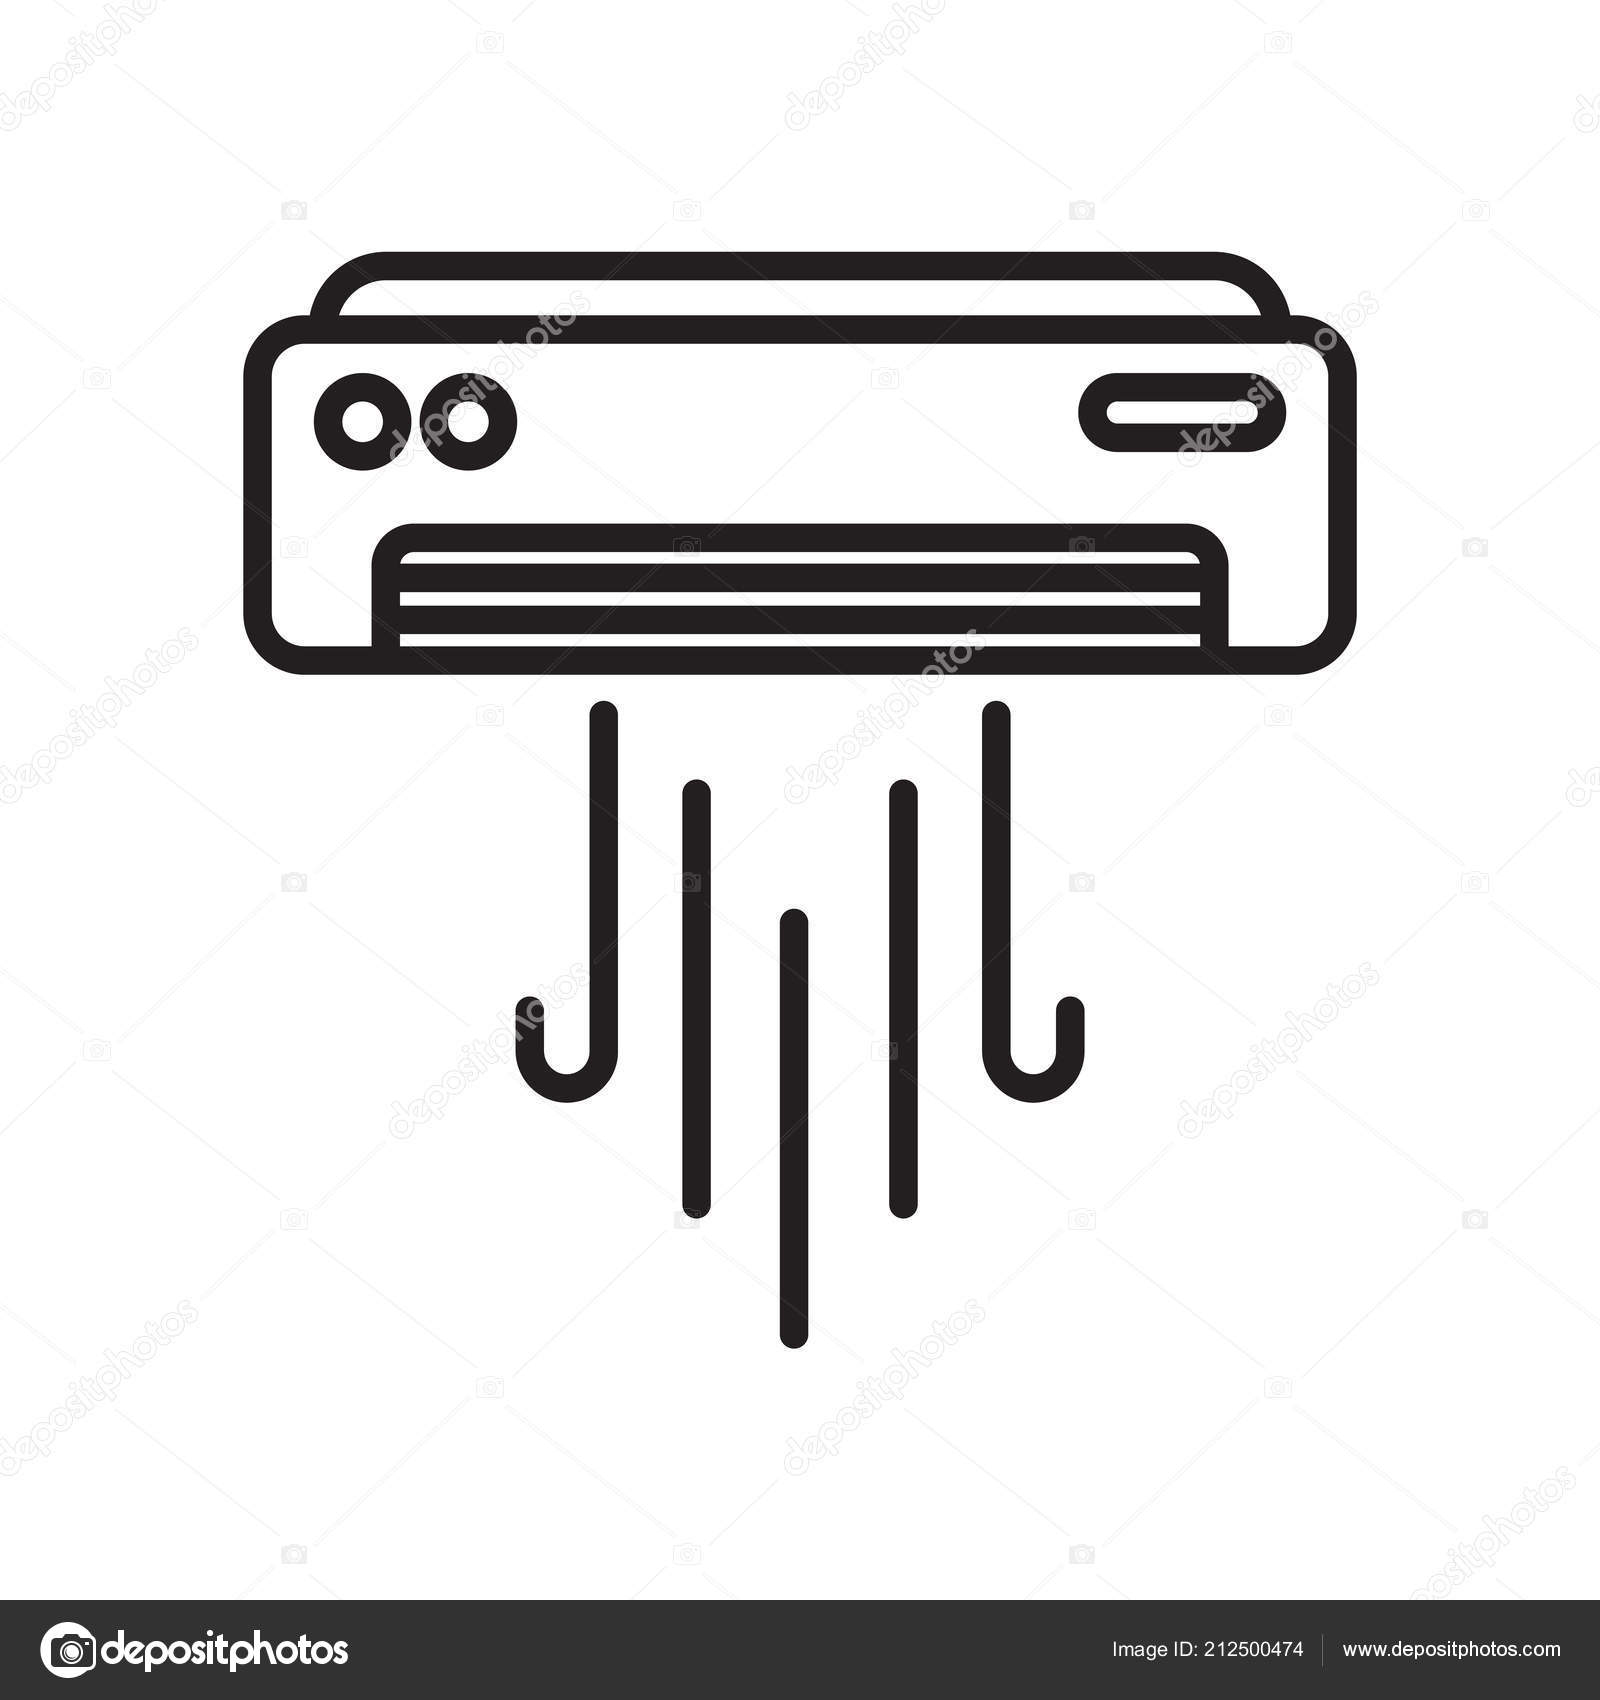 air conditioner icon vector sign and symbol isolated on